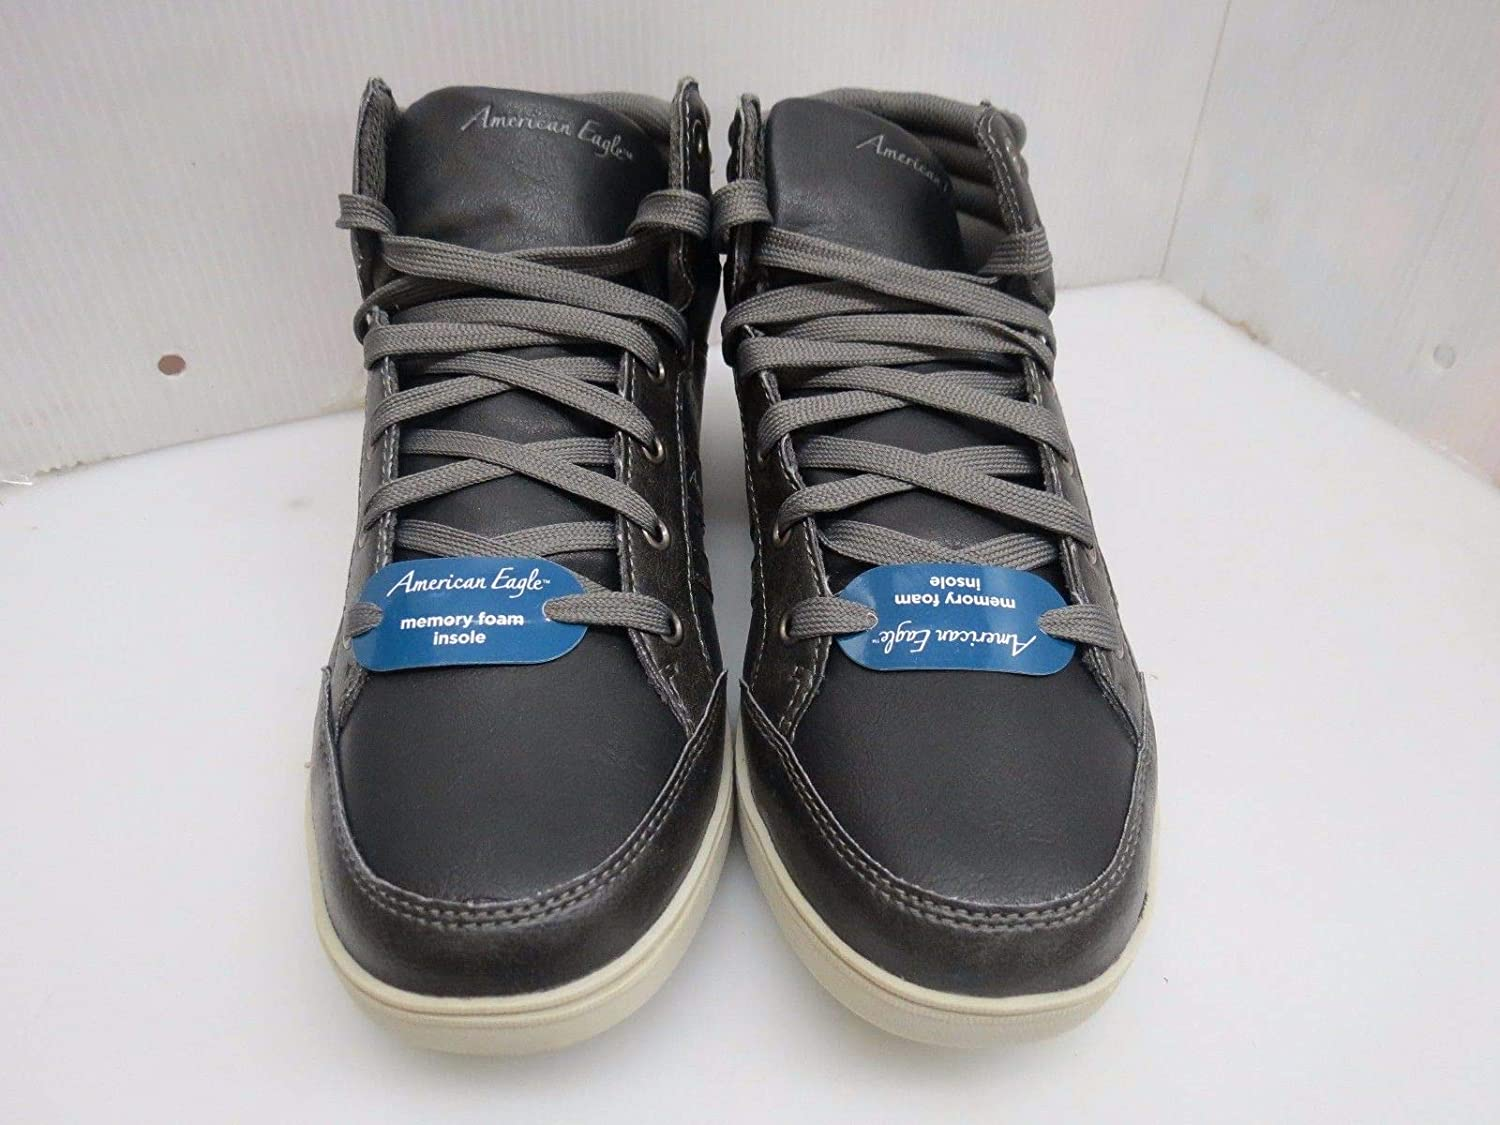 American Eagle Men's Chase High Top